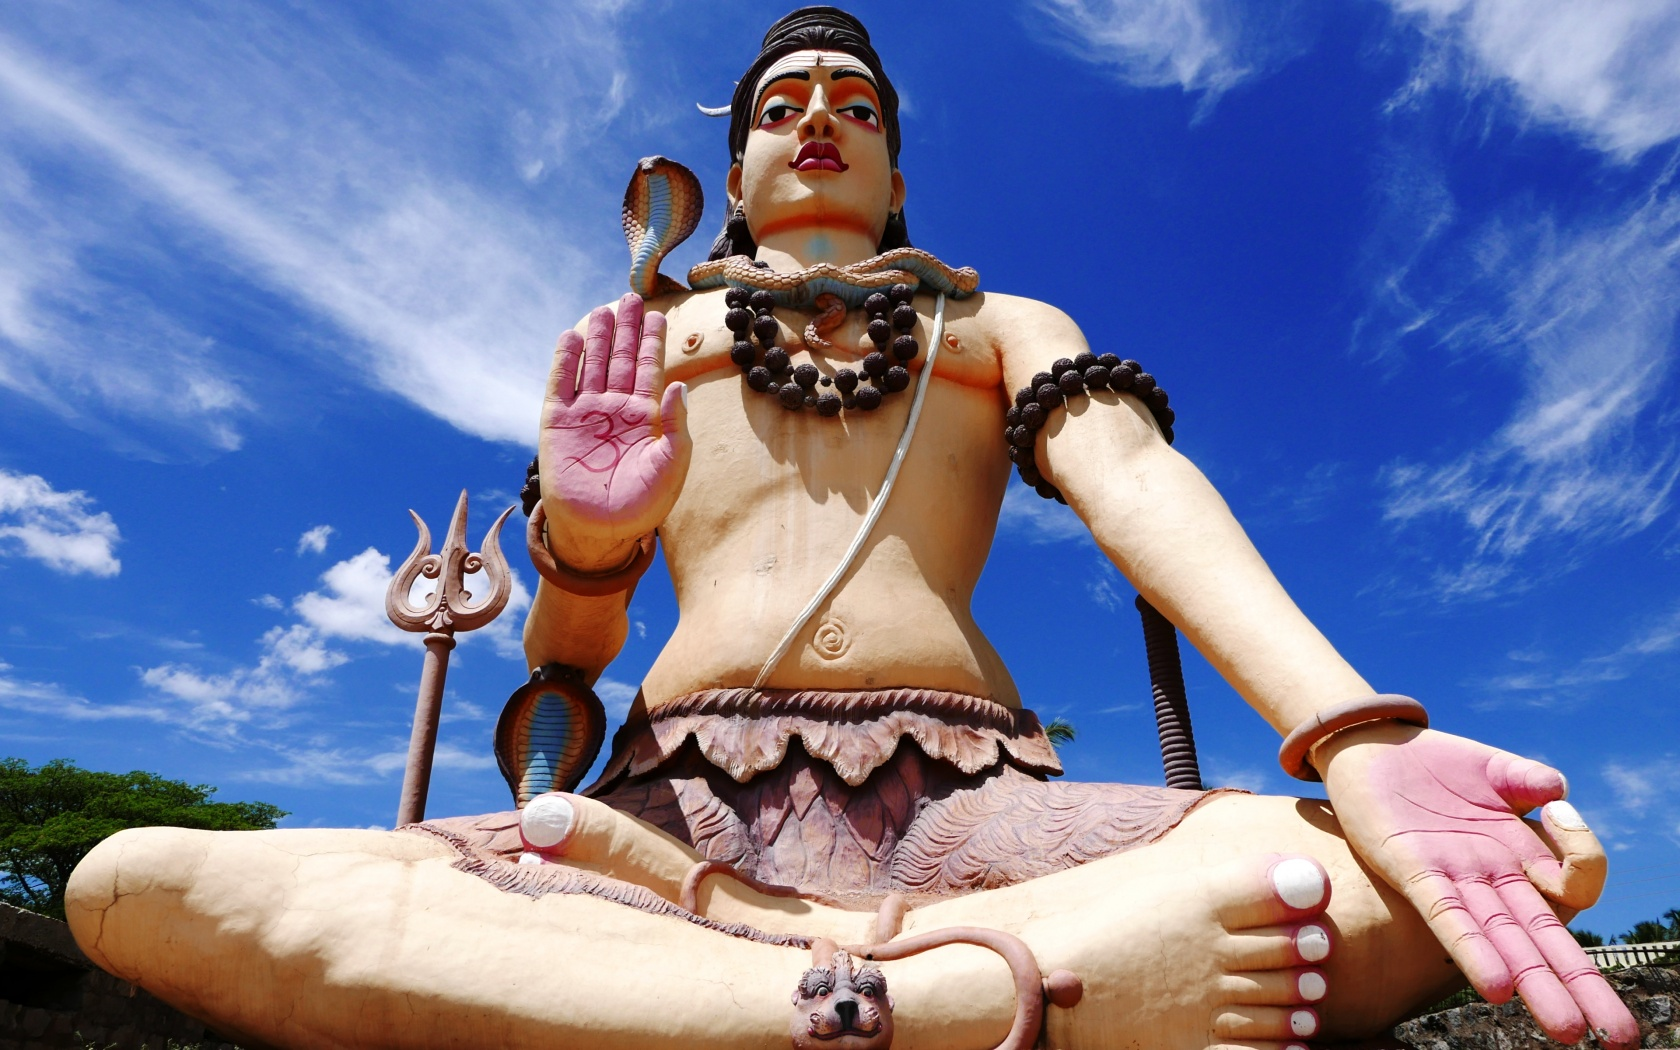 Big Lord Shiva Statue And Blue Sky